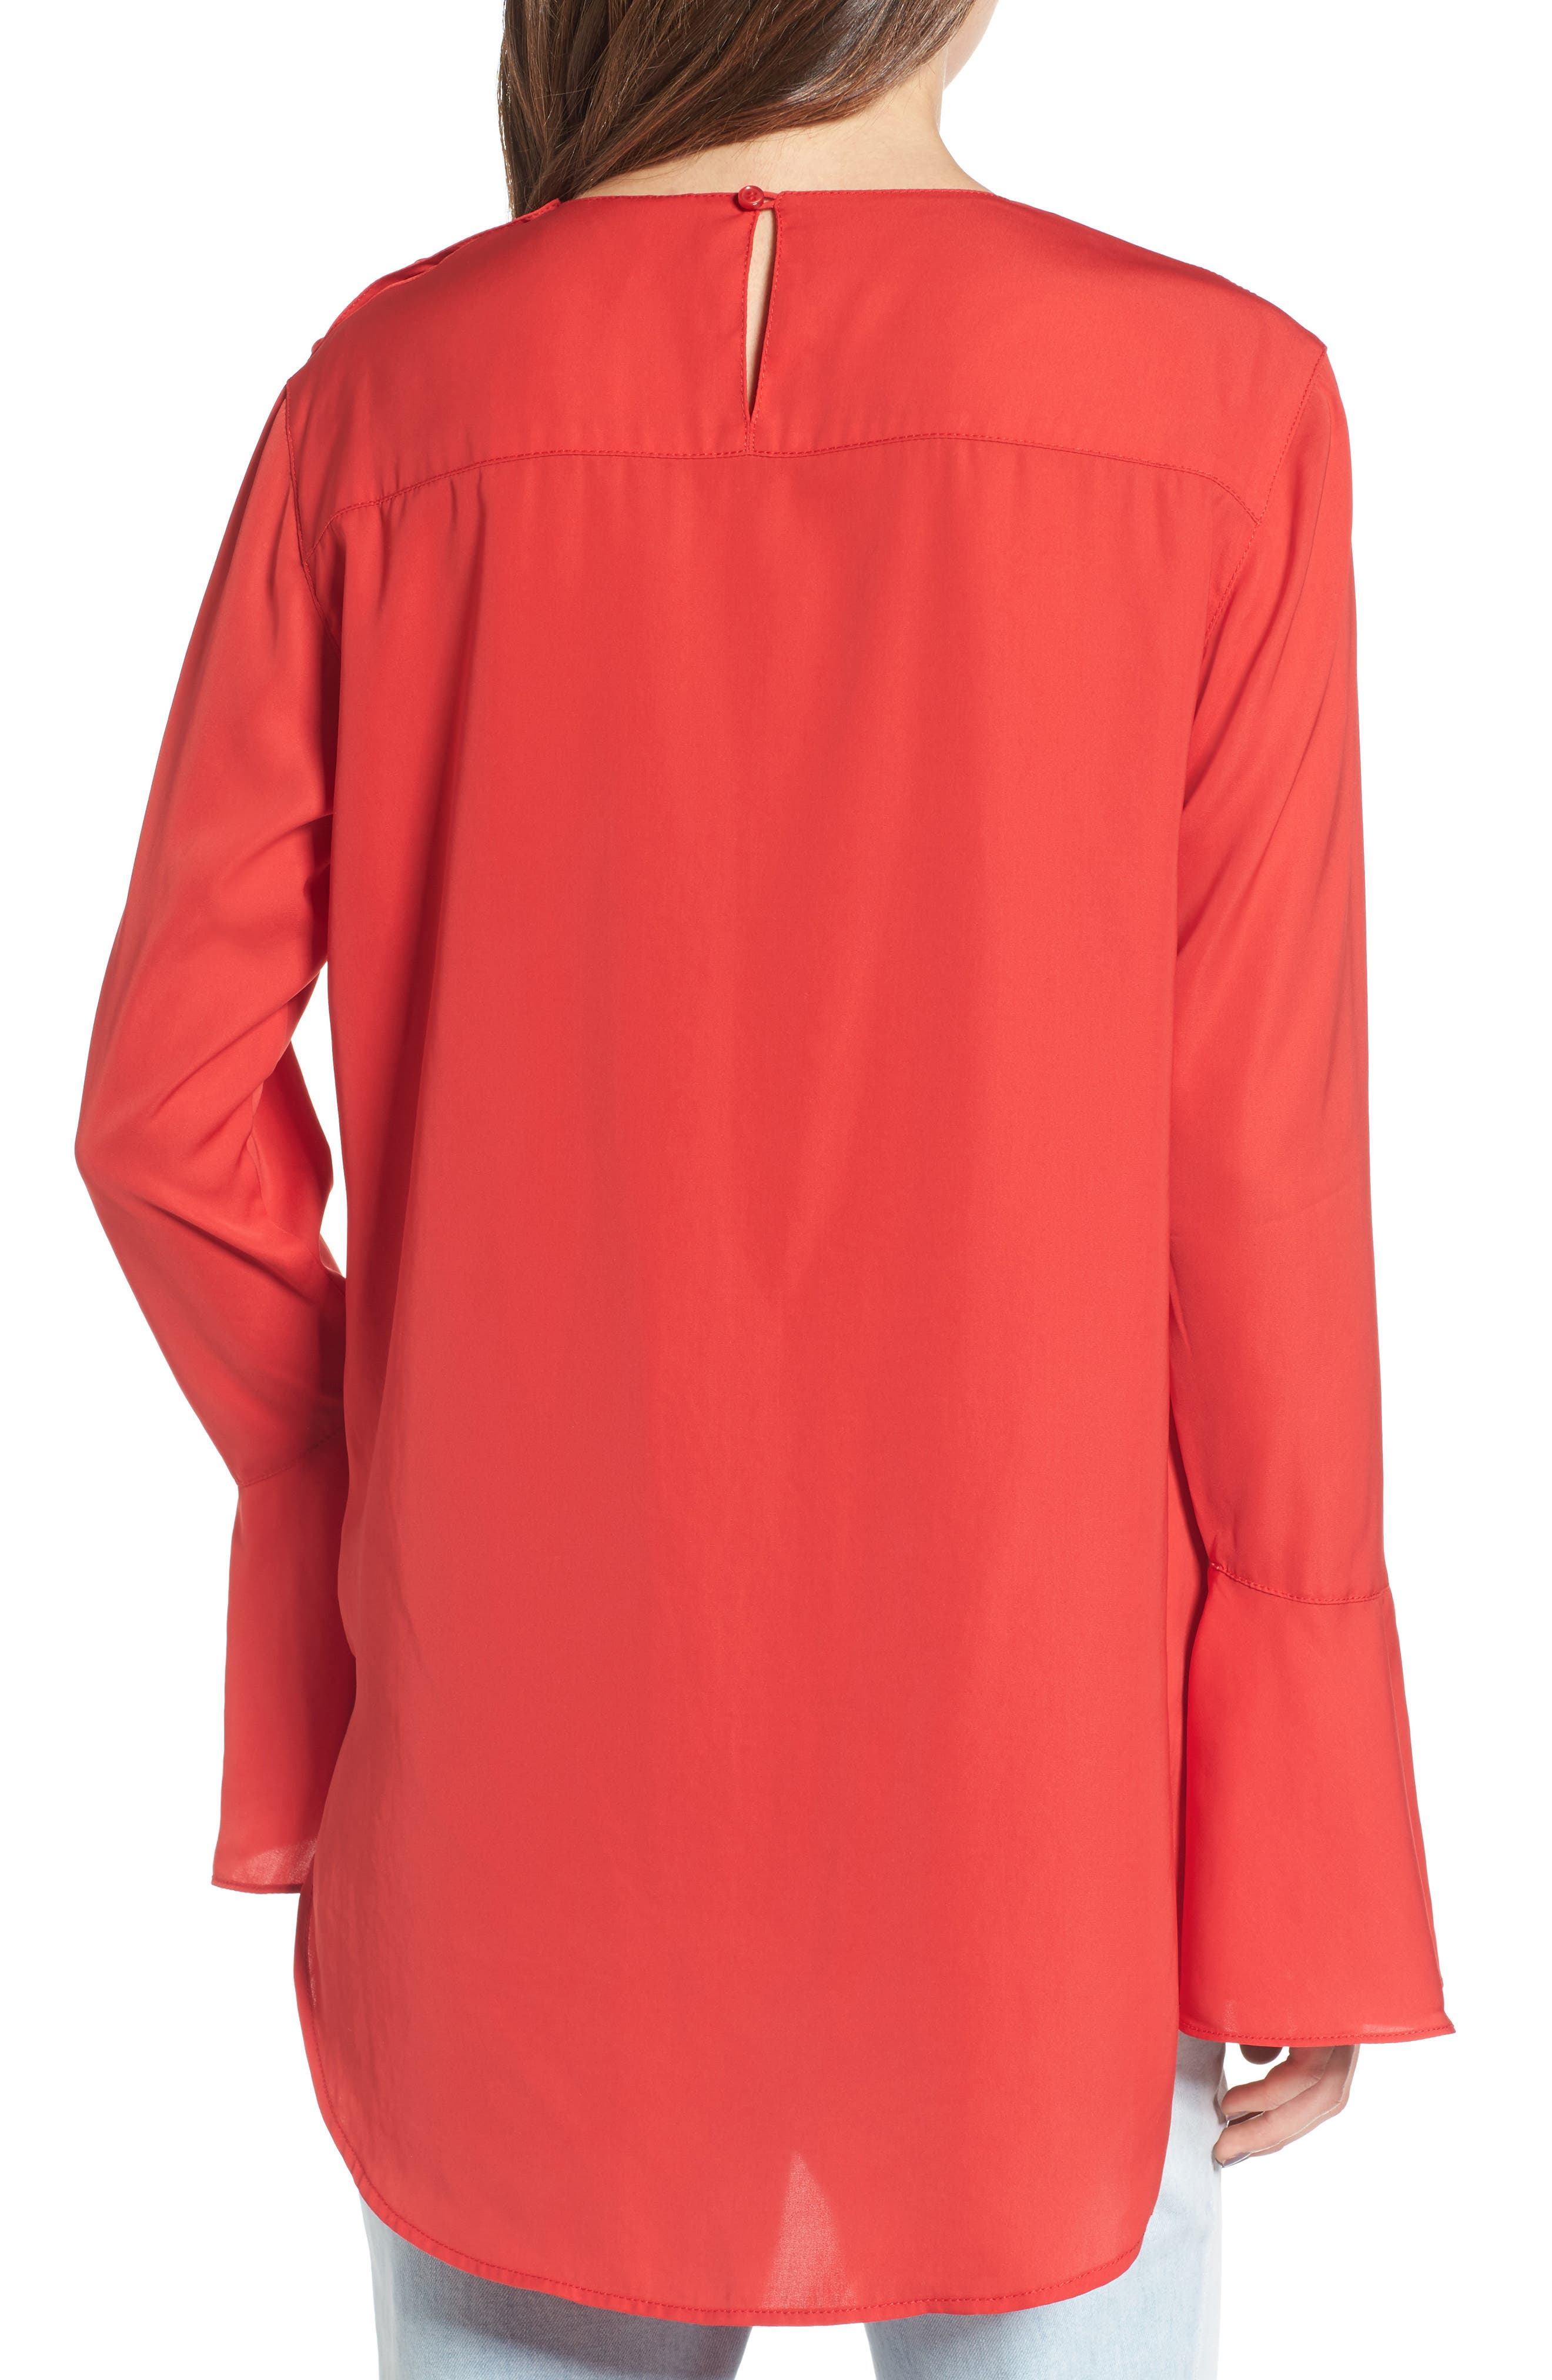 Bell Sleeve Top,                             Alternate thumbnail 2, color,                             Red Ribbon